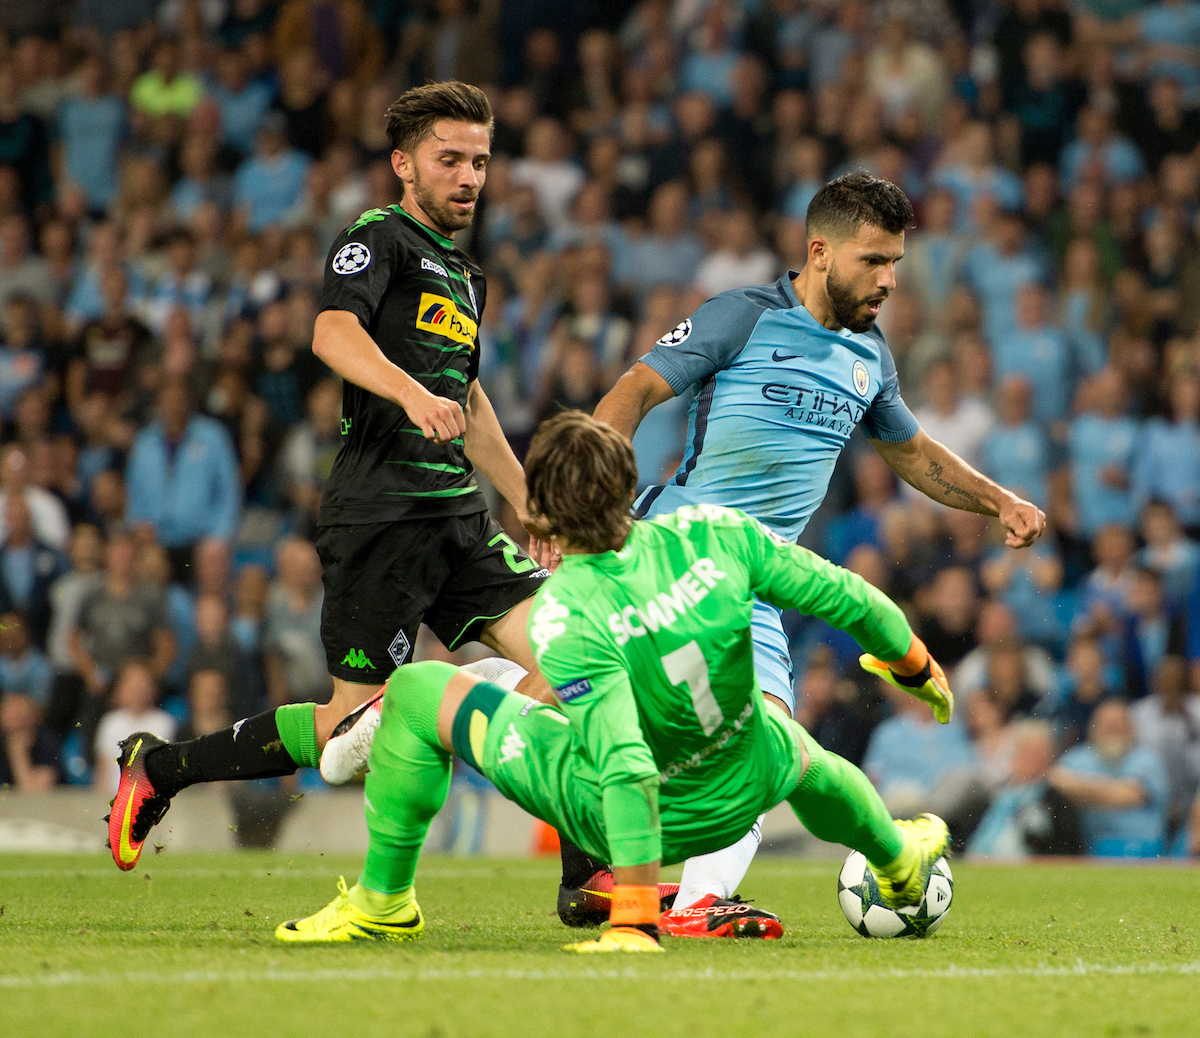 Sergio Aguero of Manchester City (right) goes round Borussia Monchengladbach goalkeeper Yann Sommer before scoring to make it 3-0 during the UEFA Champions League match at the Etihad Stadium, Manchester Picture by Russell Hart/Focus Images Ltd 07791 688 420 14/09/2016